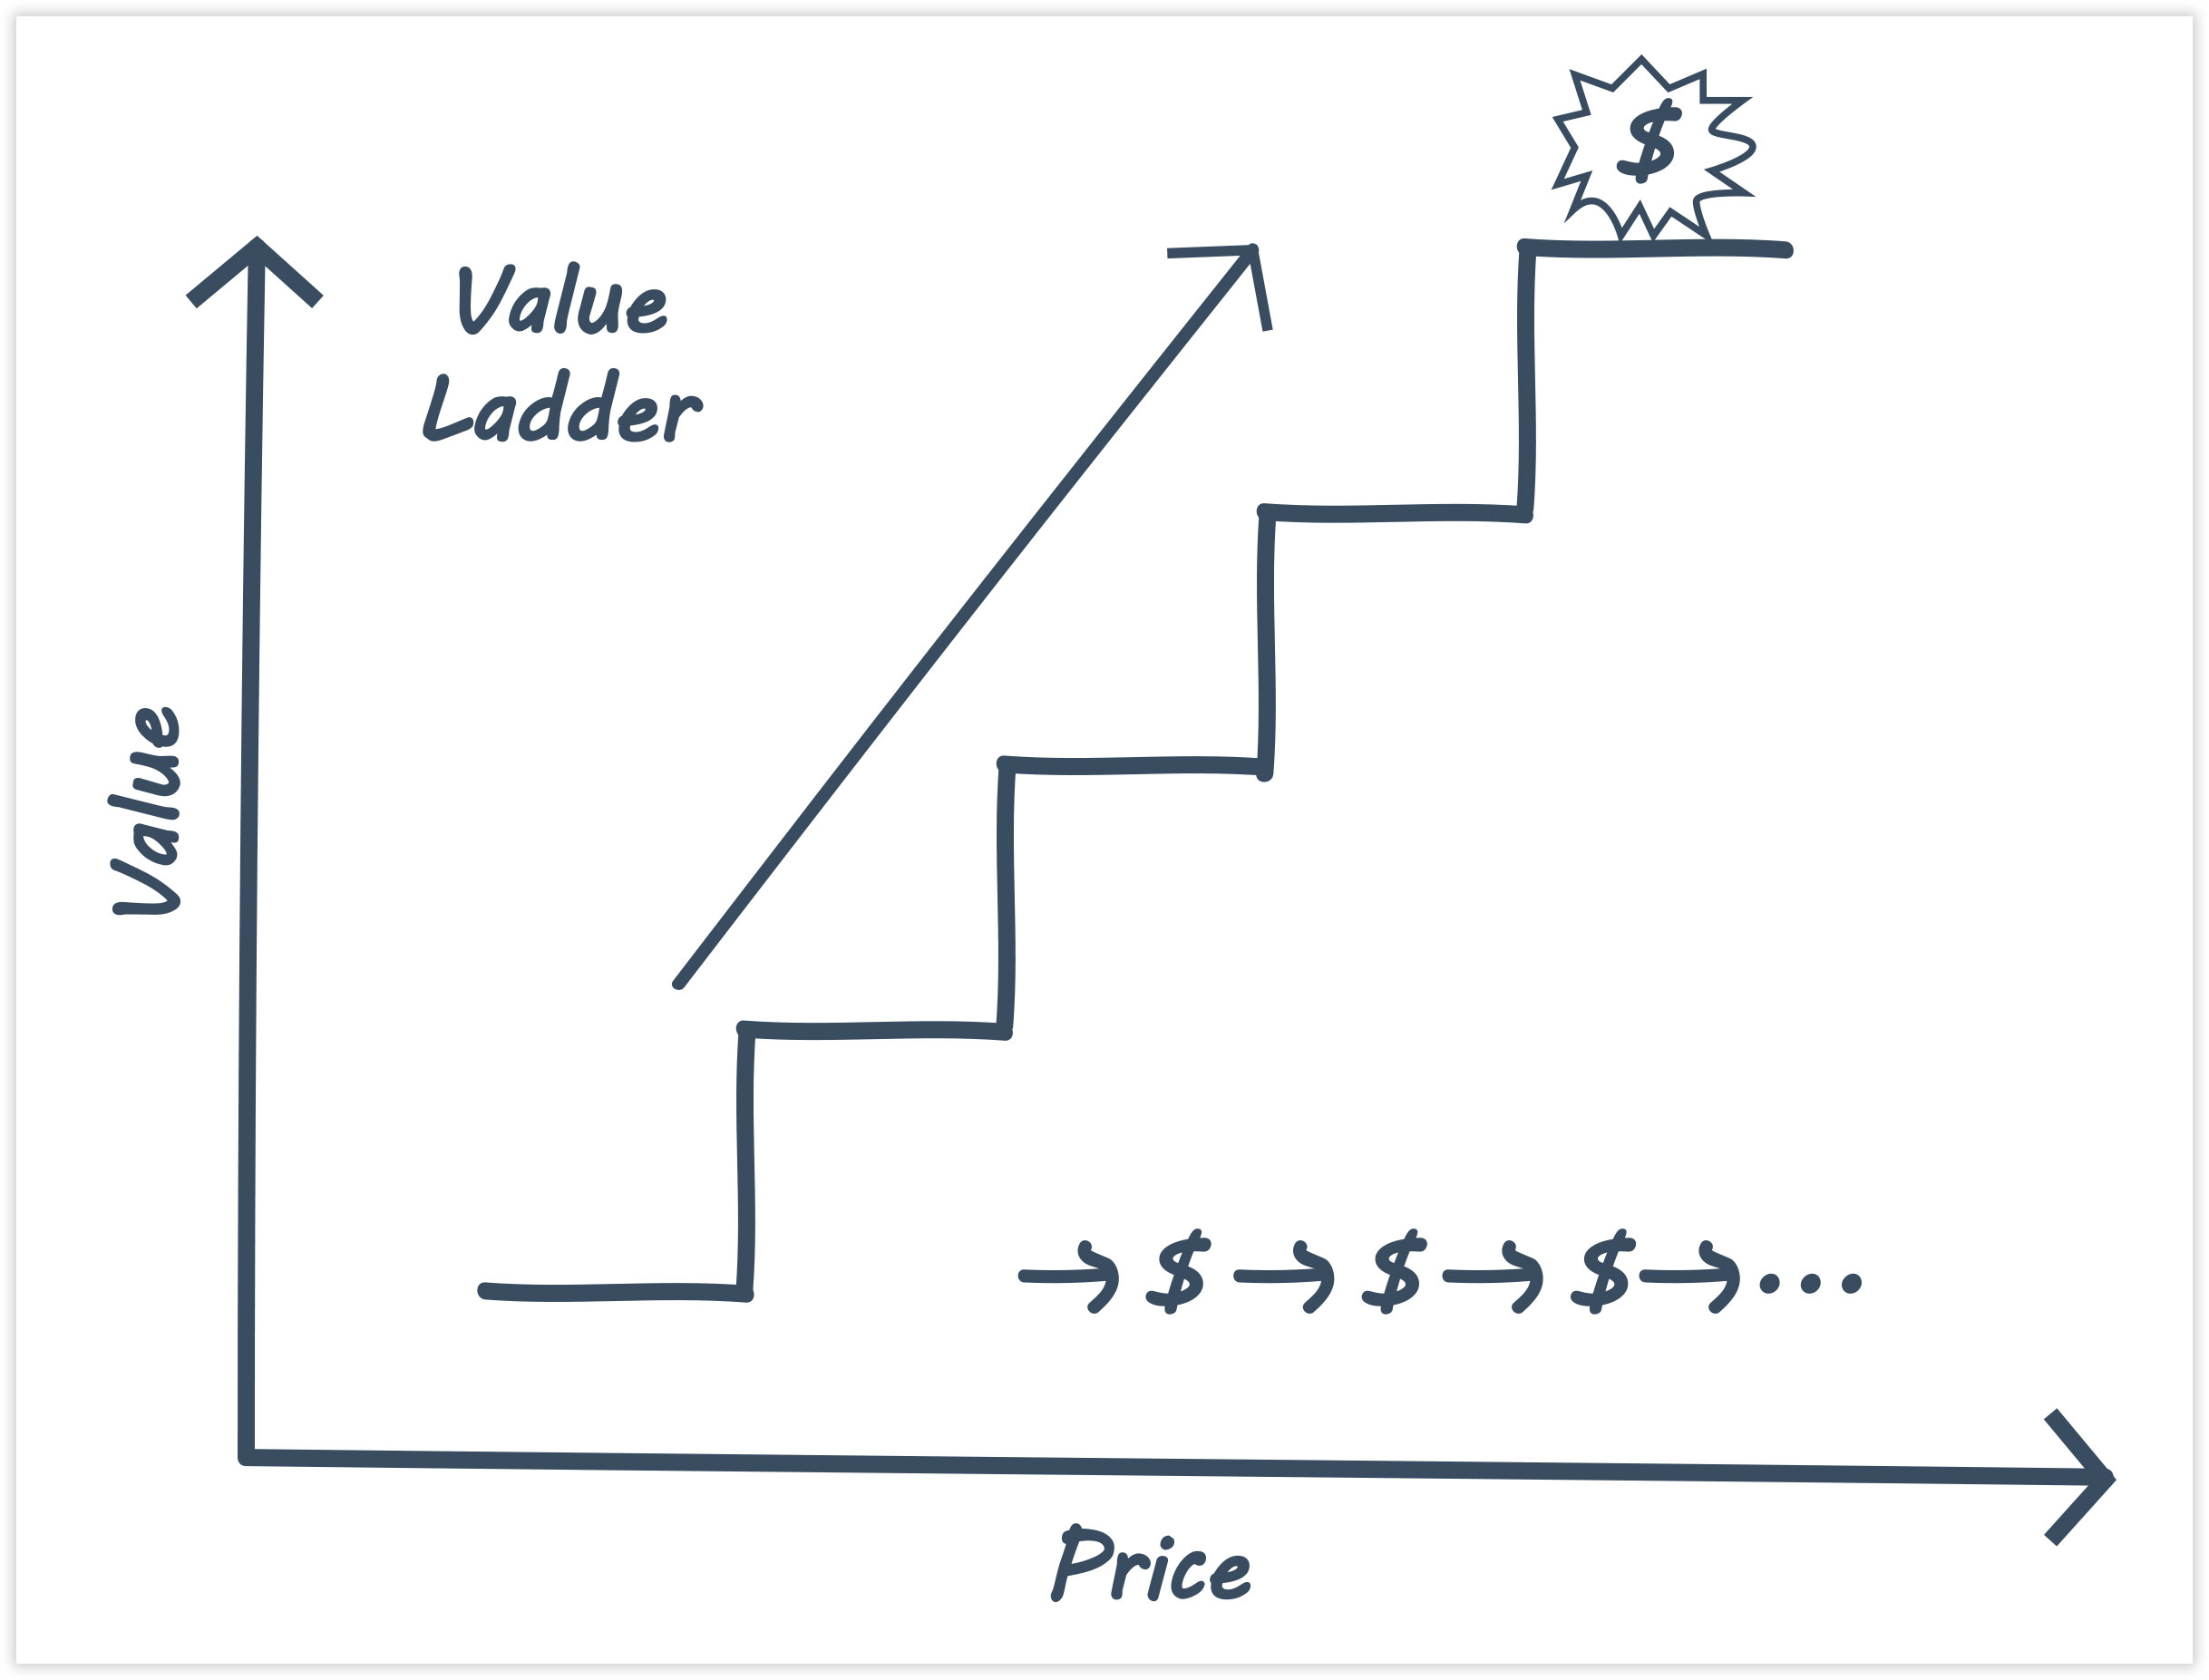 ClickFunnels Value Ladder Diagram